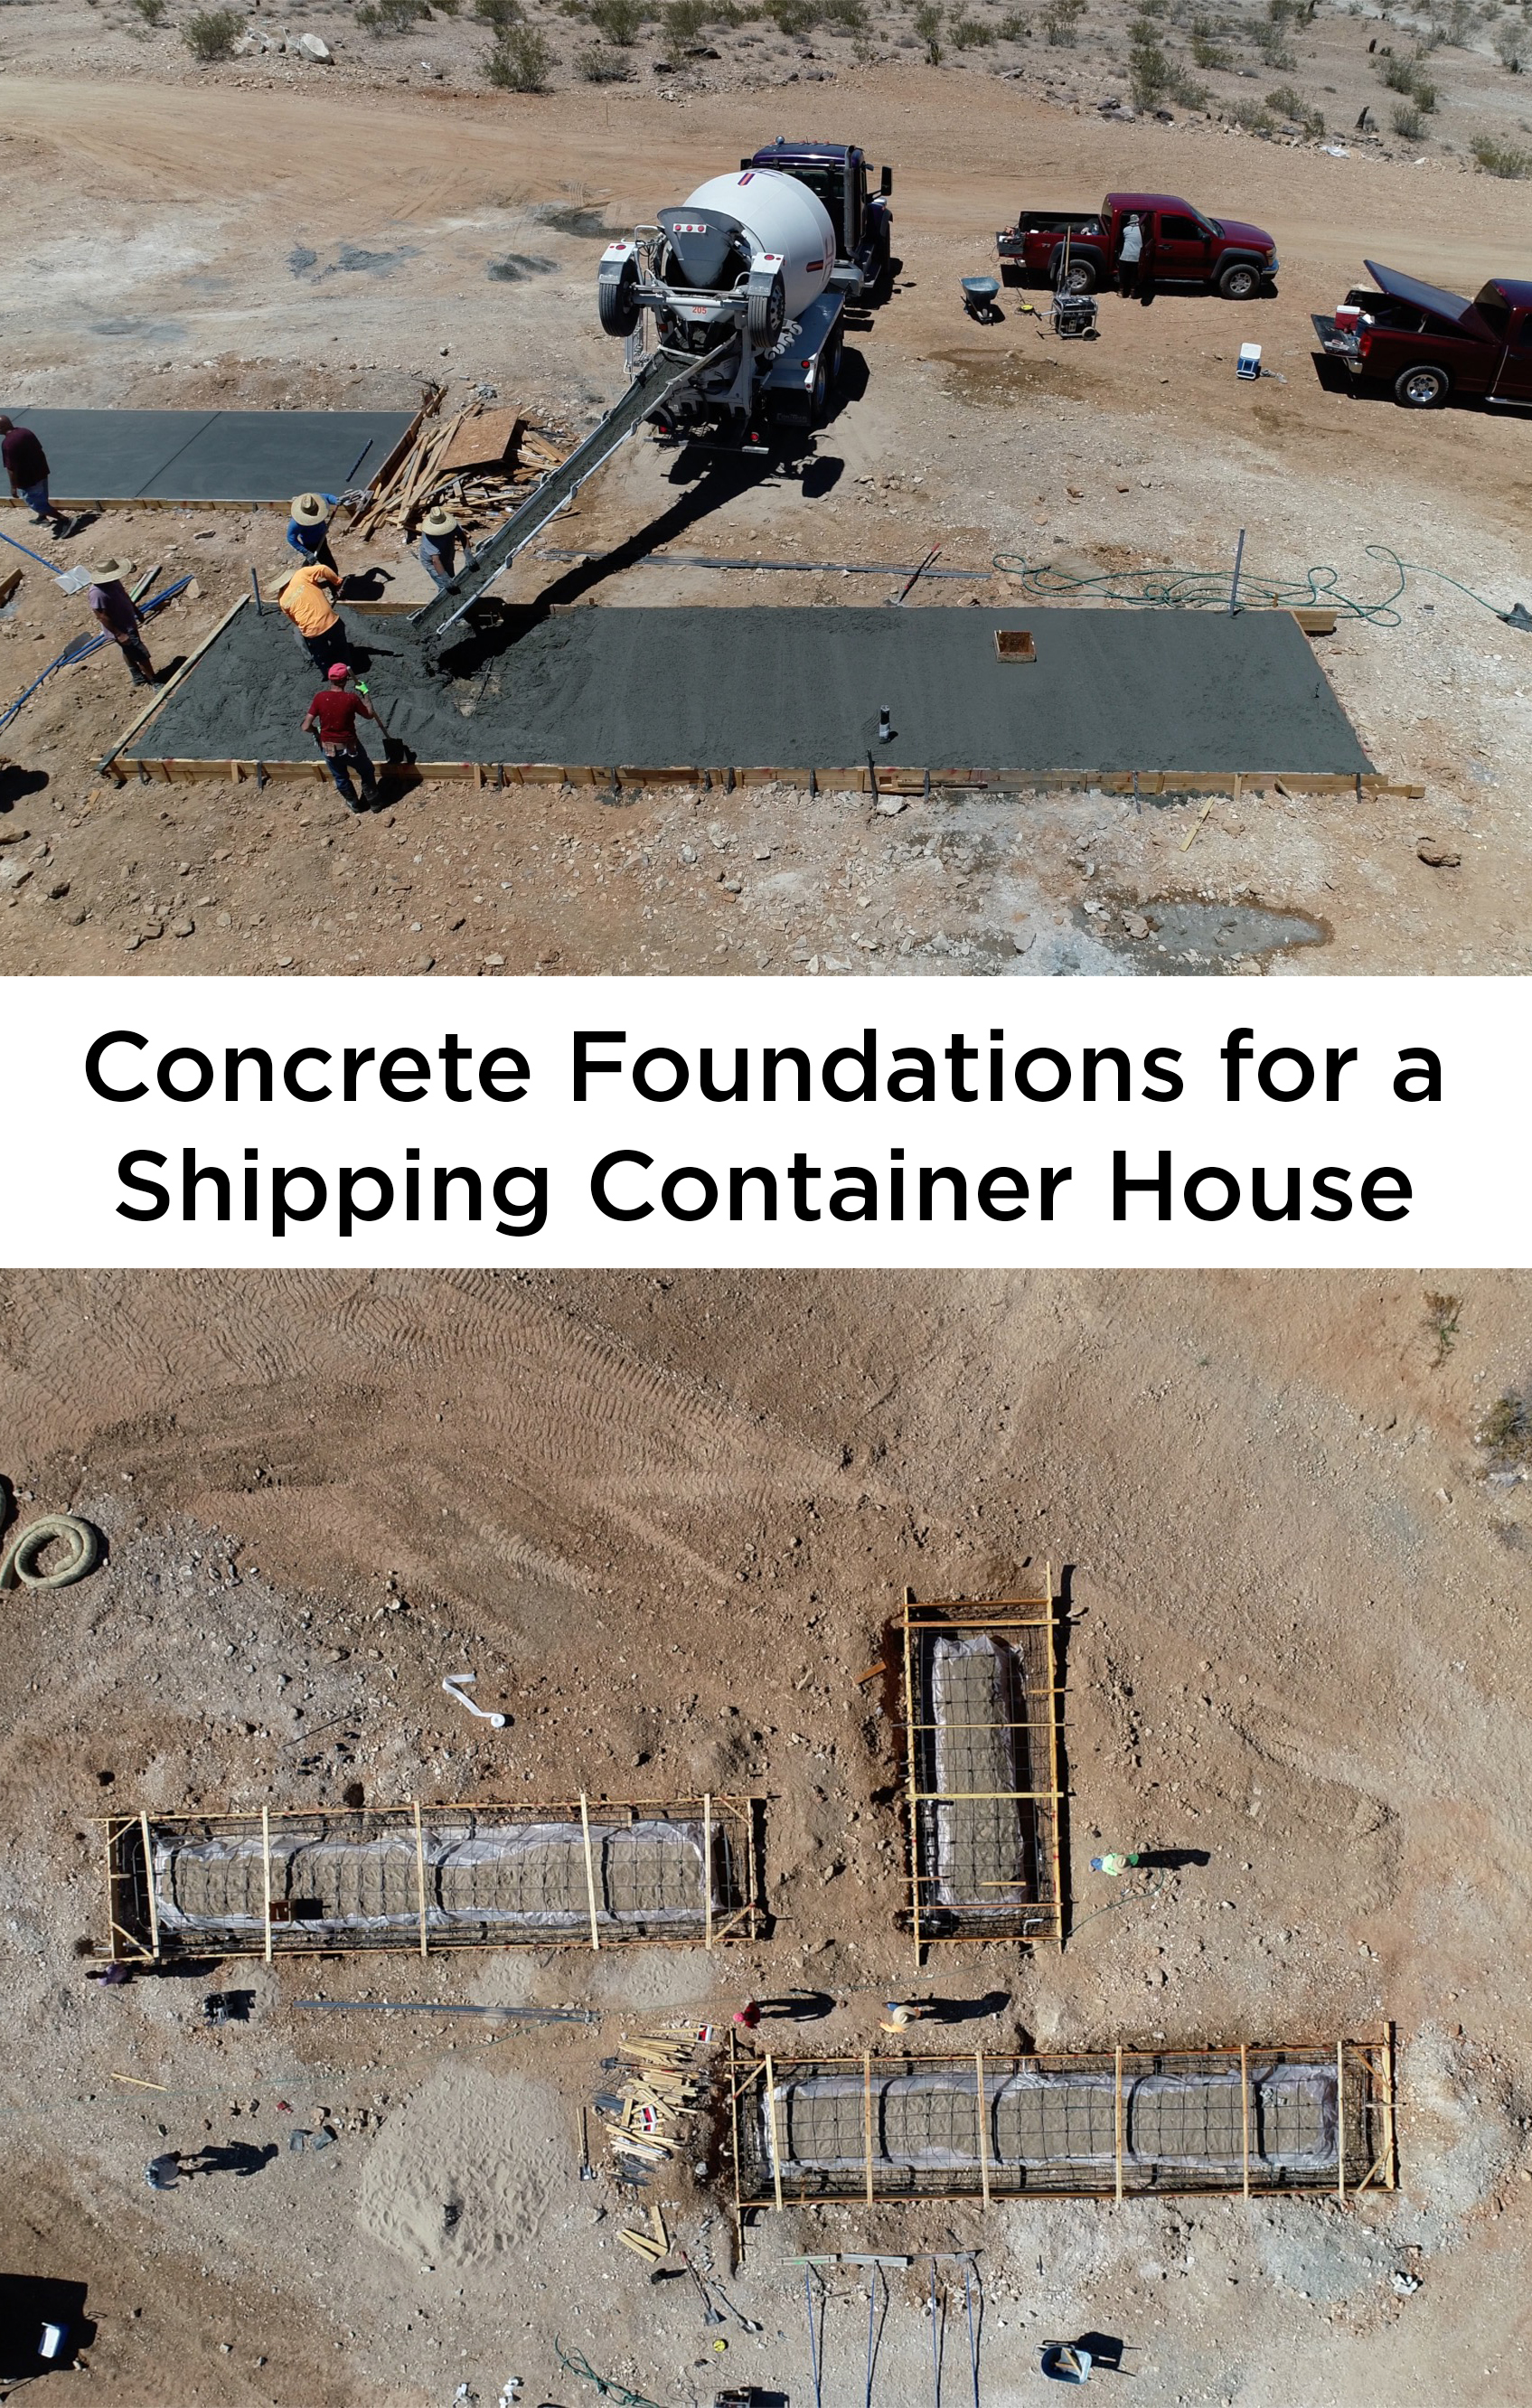 ConcreteFoundations.jpg